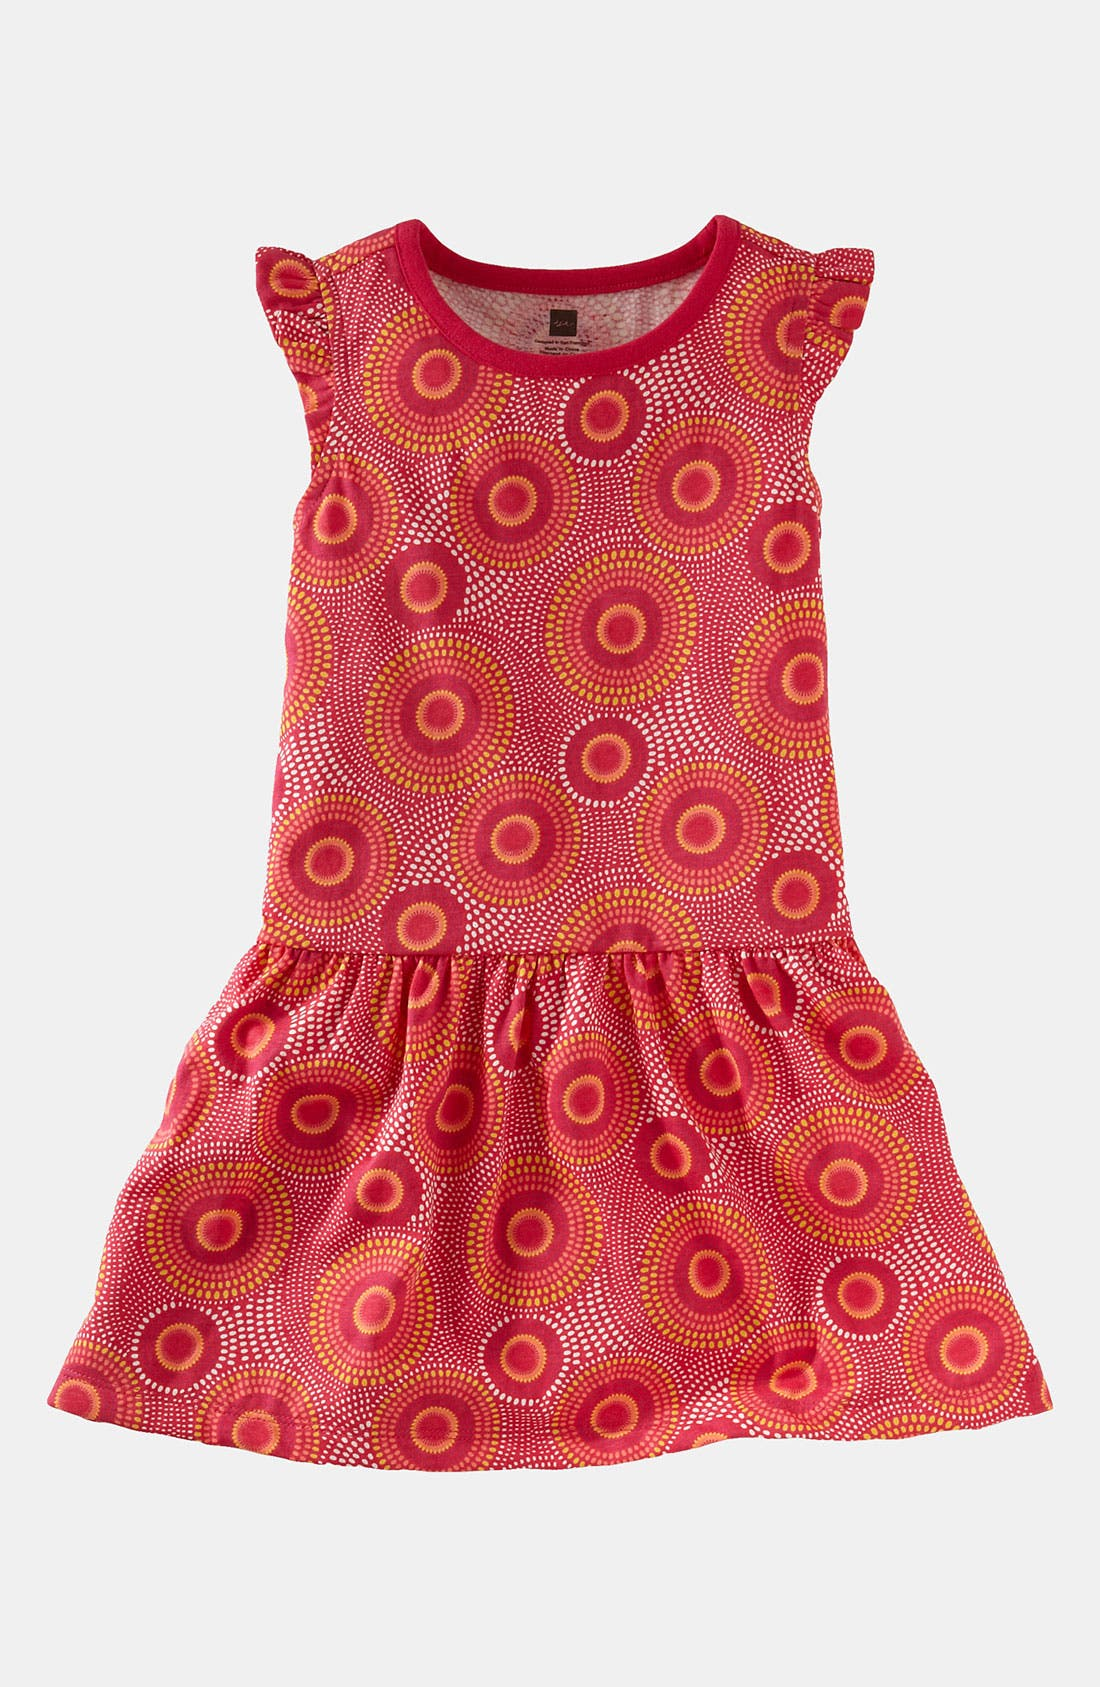 Alternate Image 1 Selected - Tea Collection 'Elm' Flutter Dress (Infant)